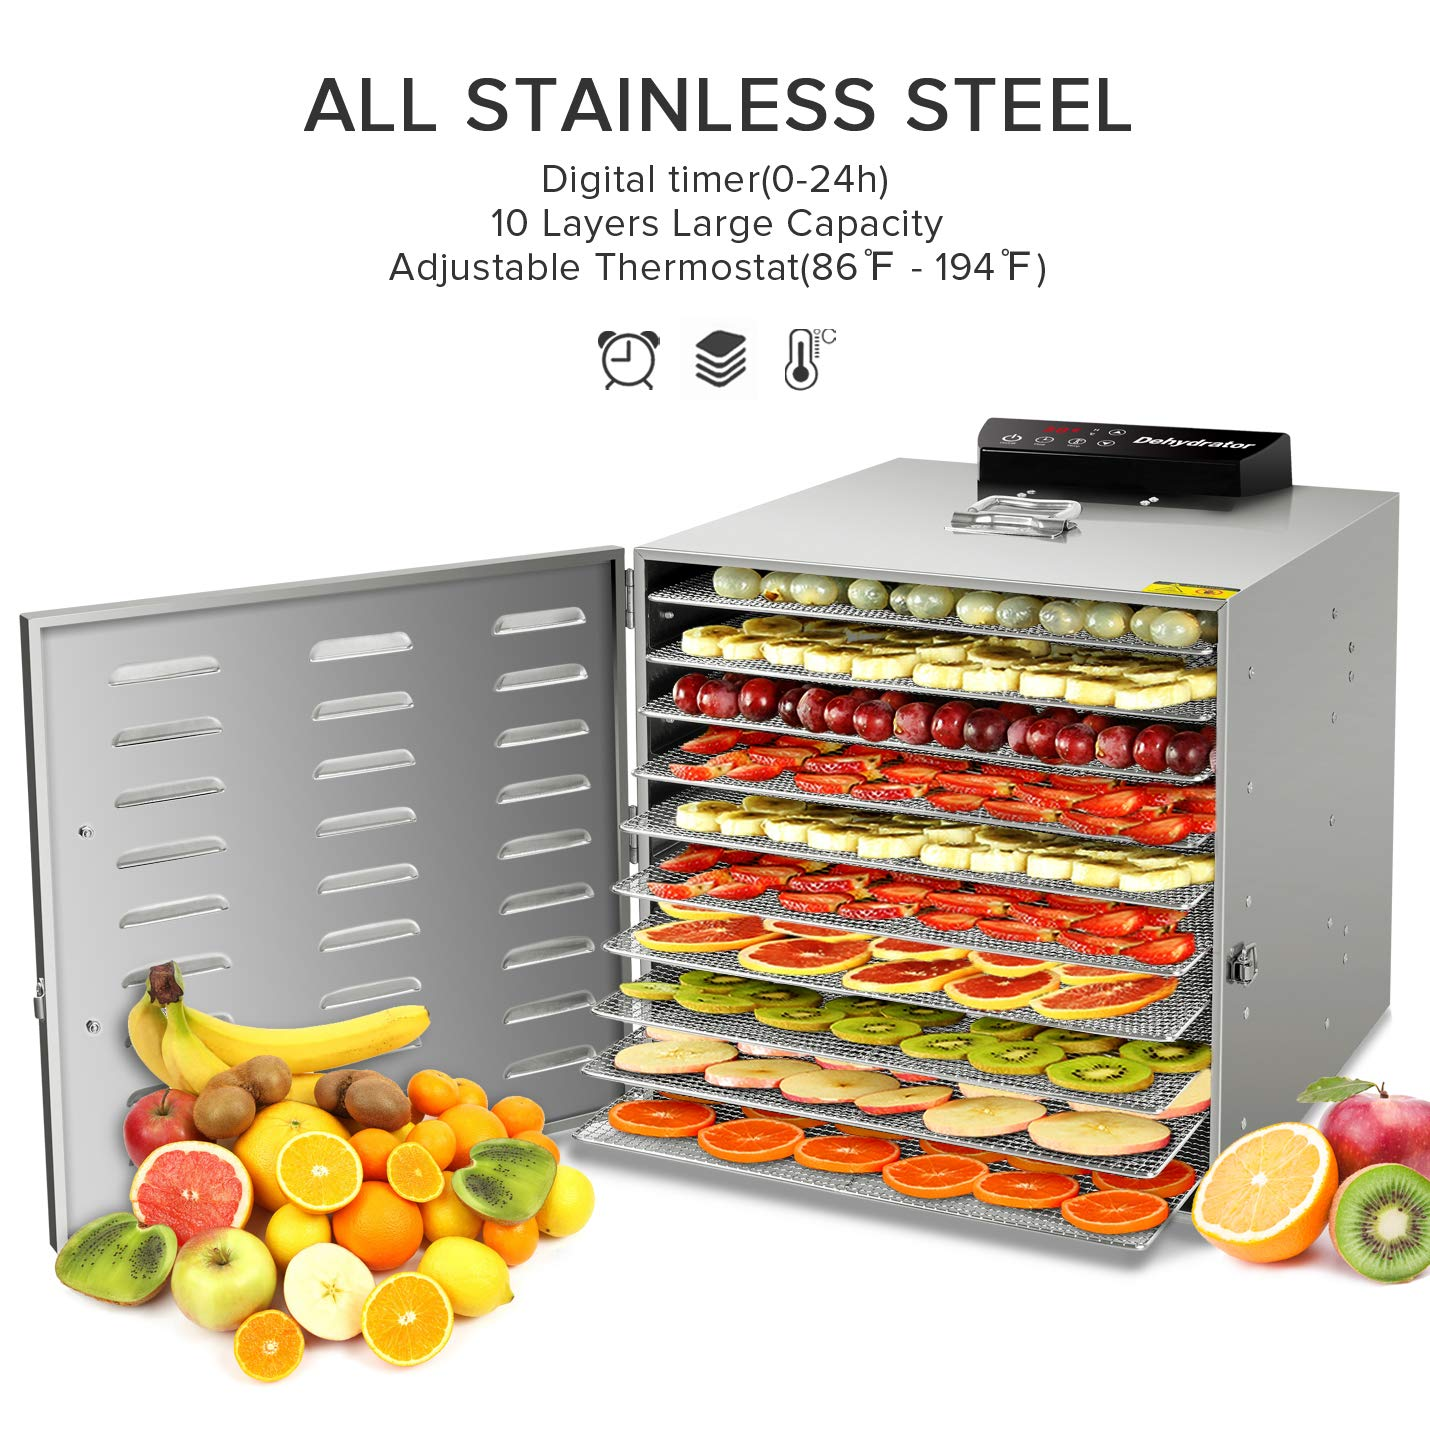 Commercial Stainless Steel Food Dehydrator -Raw Food & Jerky Fruit Dehydrator -10 Trays 1000W Preserve Food Nutrition Professional Household Vegetable Dryer, with 0~24 Hours Digital Timer by SHUOGOU (Image #1)